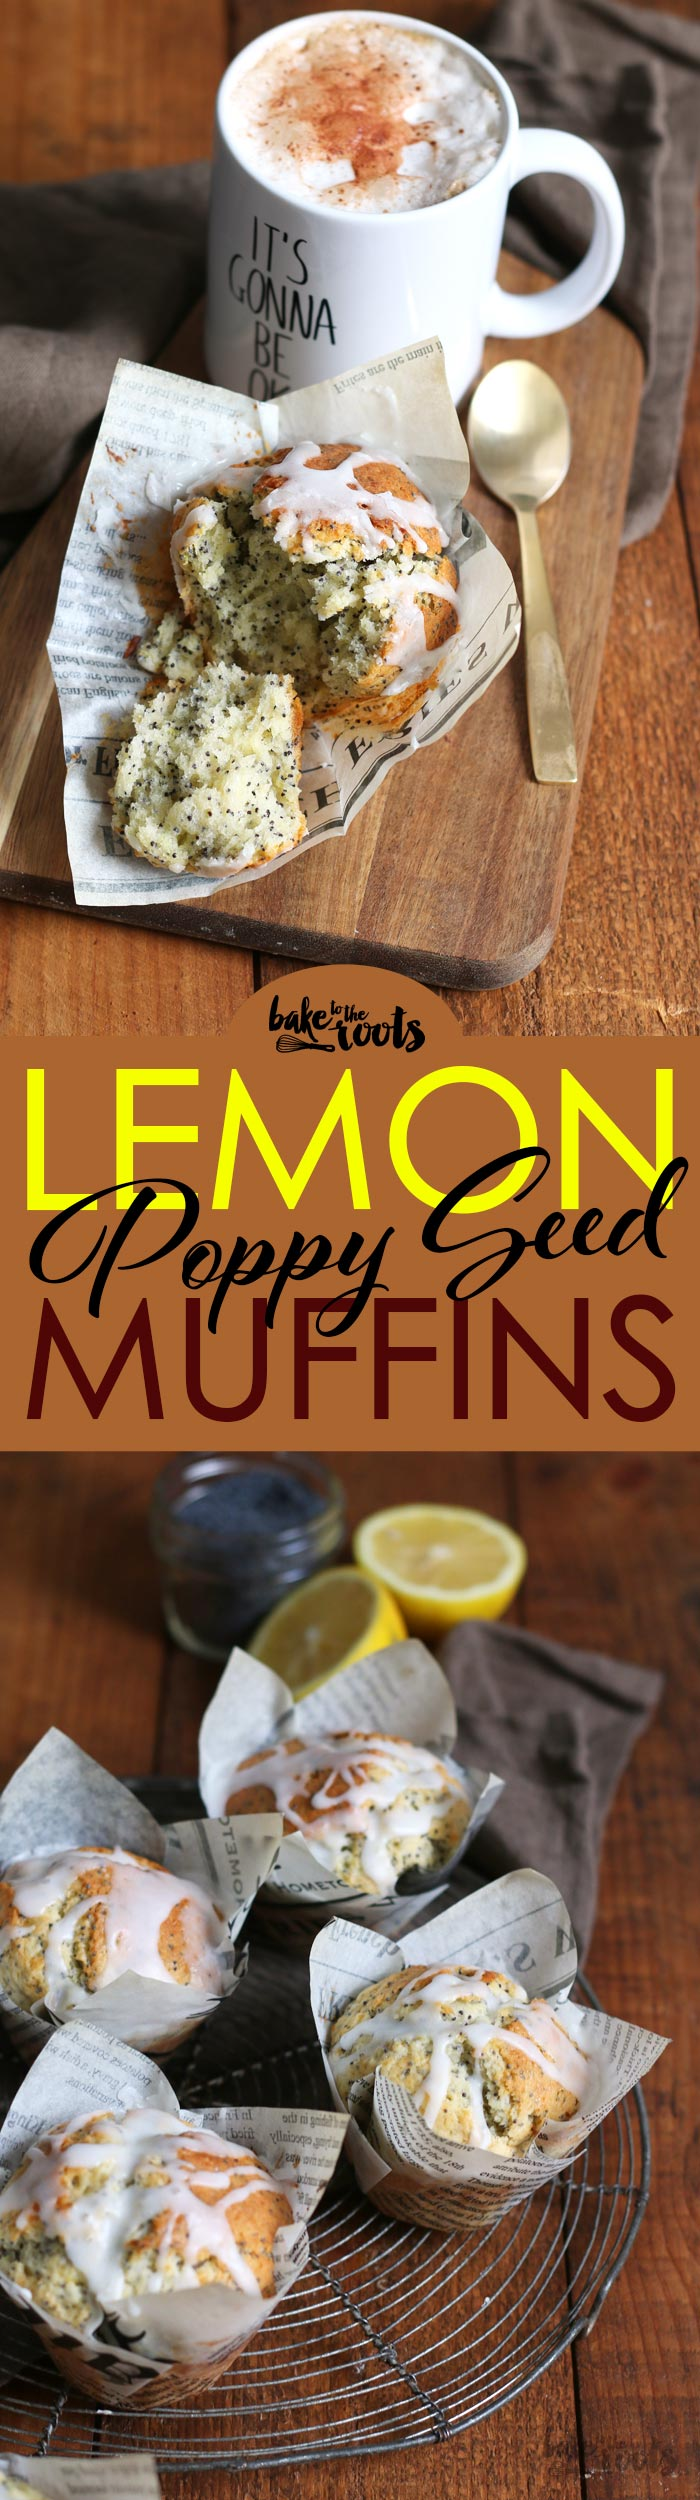 Delicious coffee house style Lemon Poppy Seed Muffins | Bake to the roots